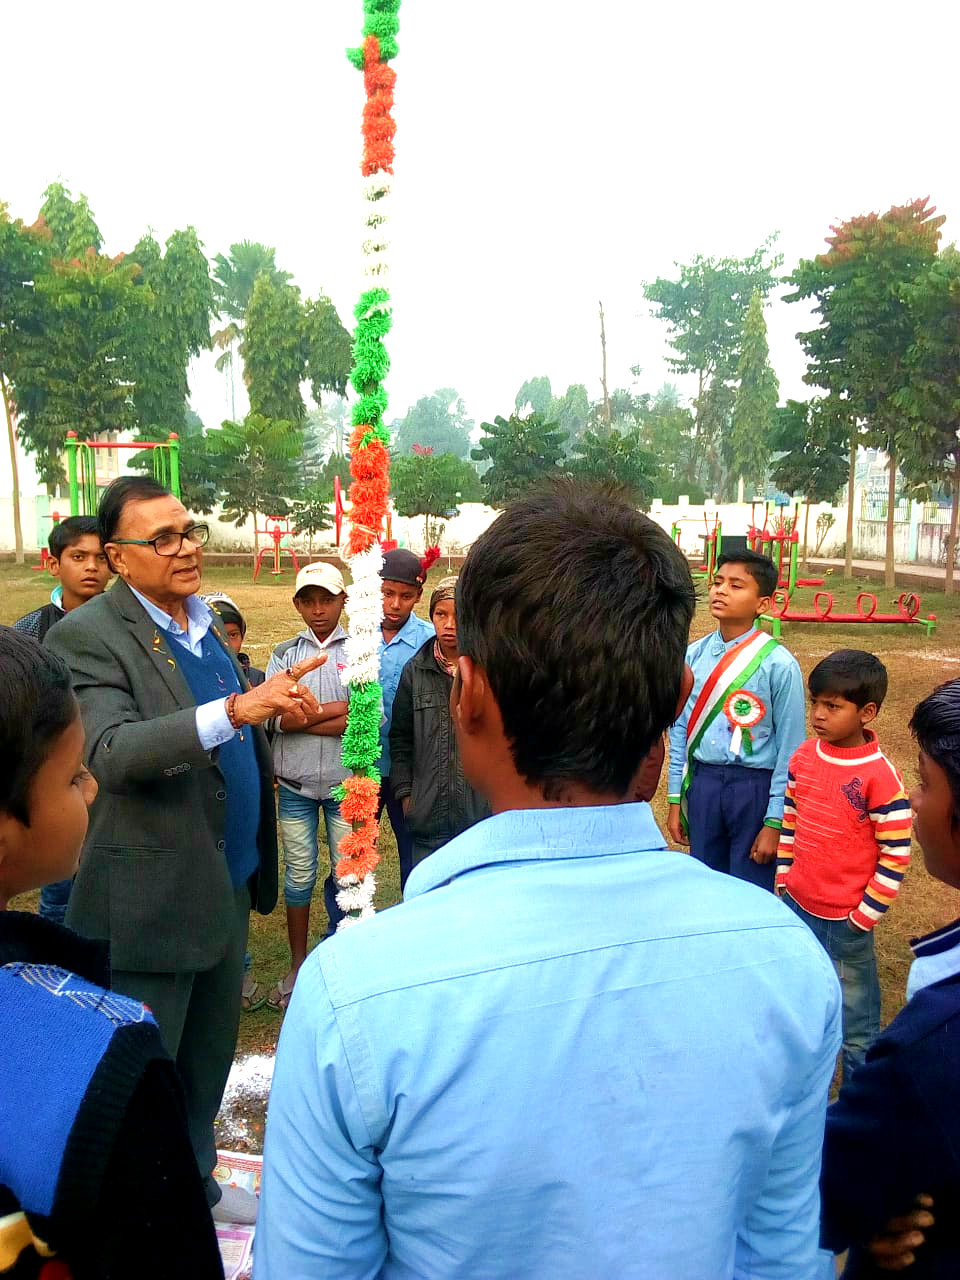 Dr.Madhepuri delivering speech after hoisting National Flag on the event of the 70th Republic Day at Dr.APJ Abdul Kalam Park, Madhepura.